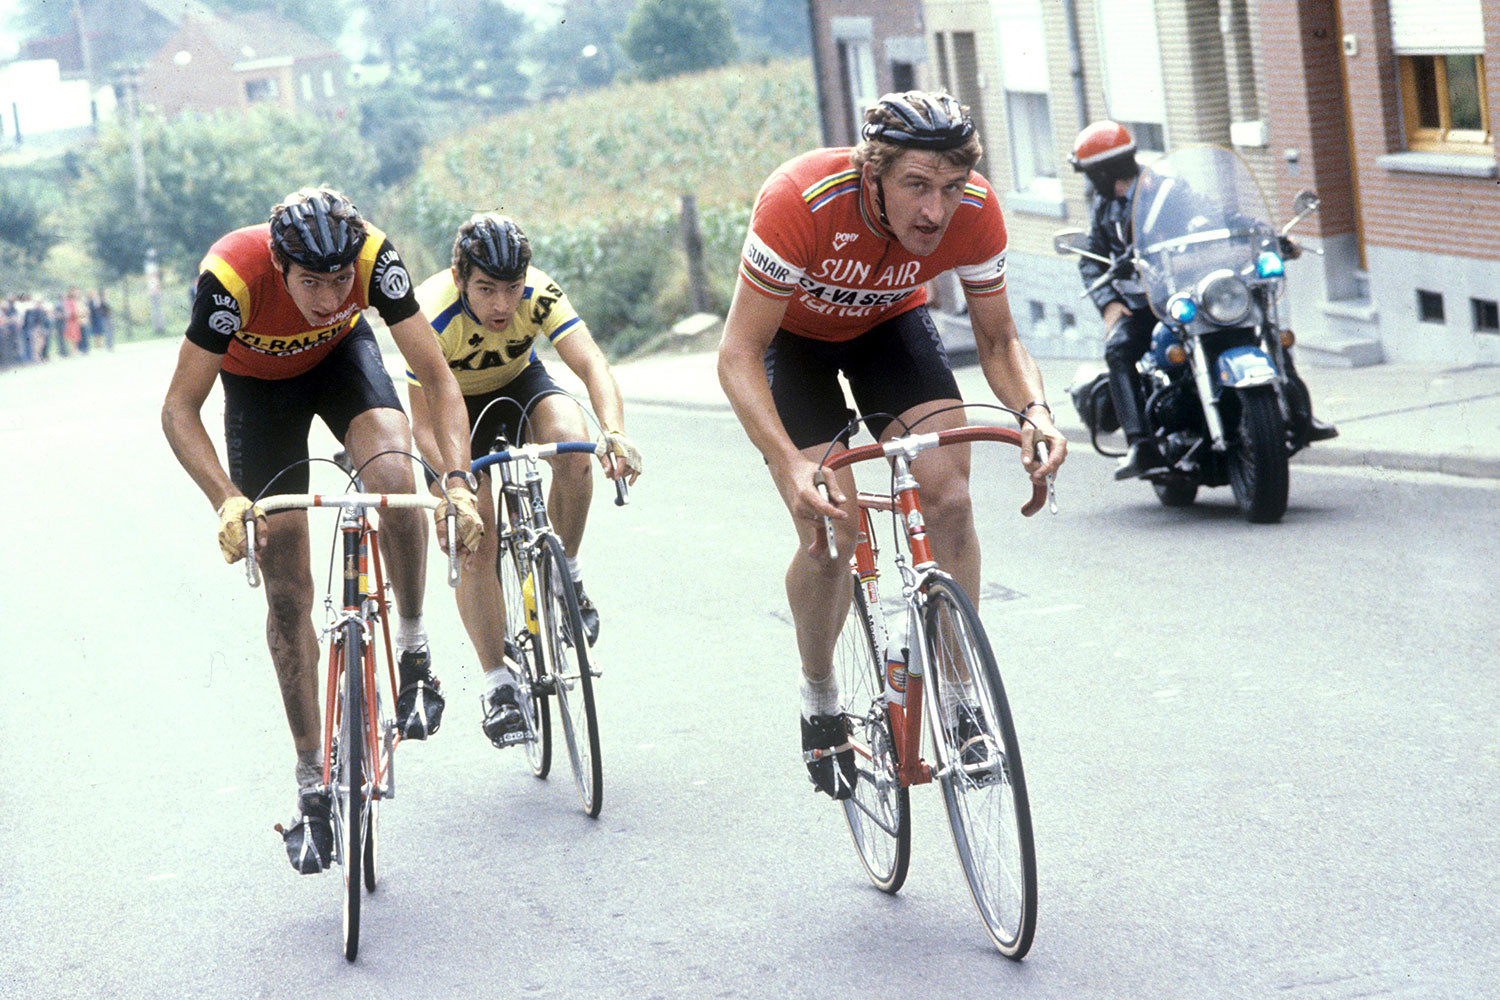 Freddy Maertens and Johan Van de Velde riding the 1979 Paris - Brussels. Photo credits: Offside / L'Equipe.